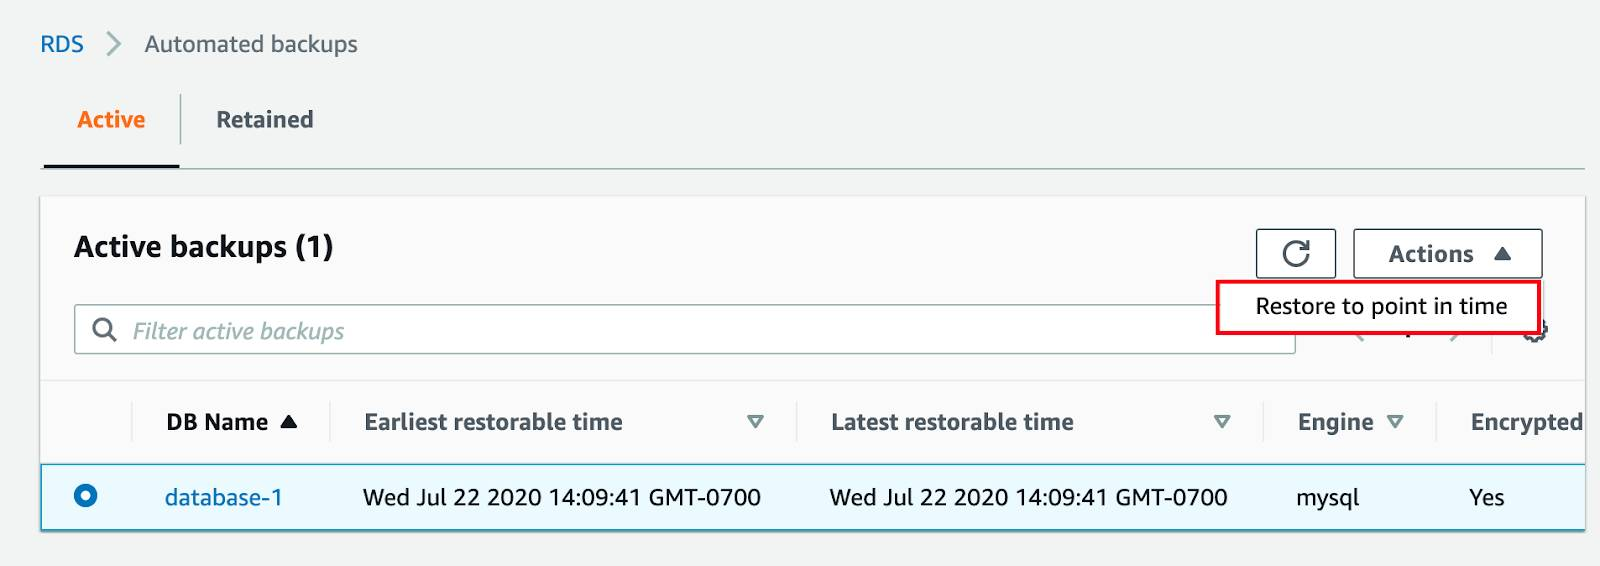 Choosing an automated backup to restore to a particular point in time.